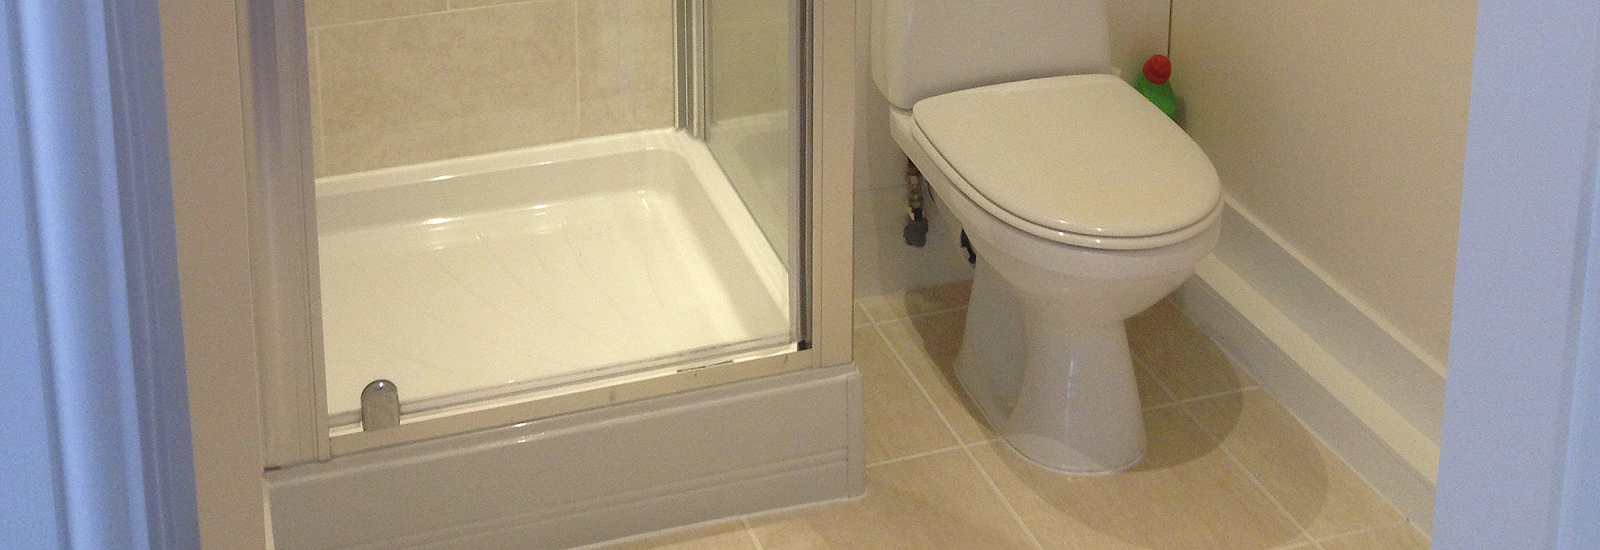 Ensuite After Refurb